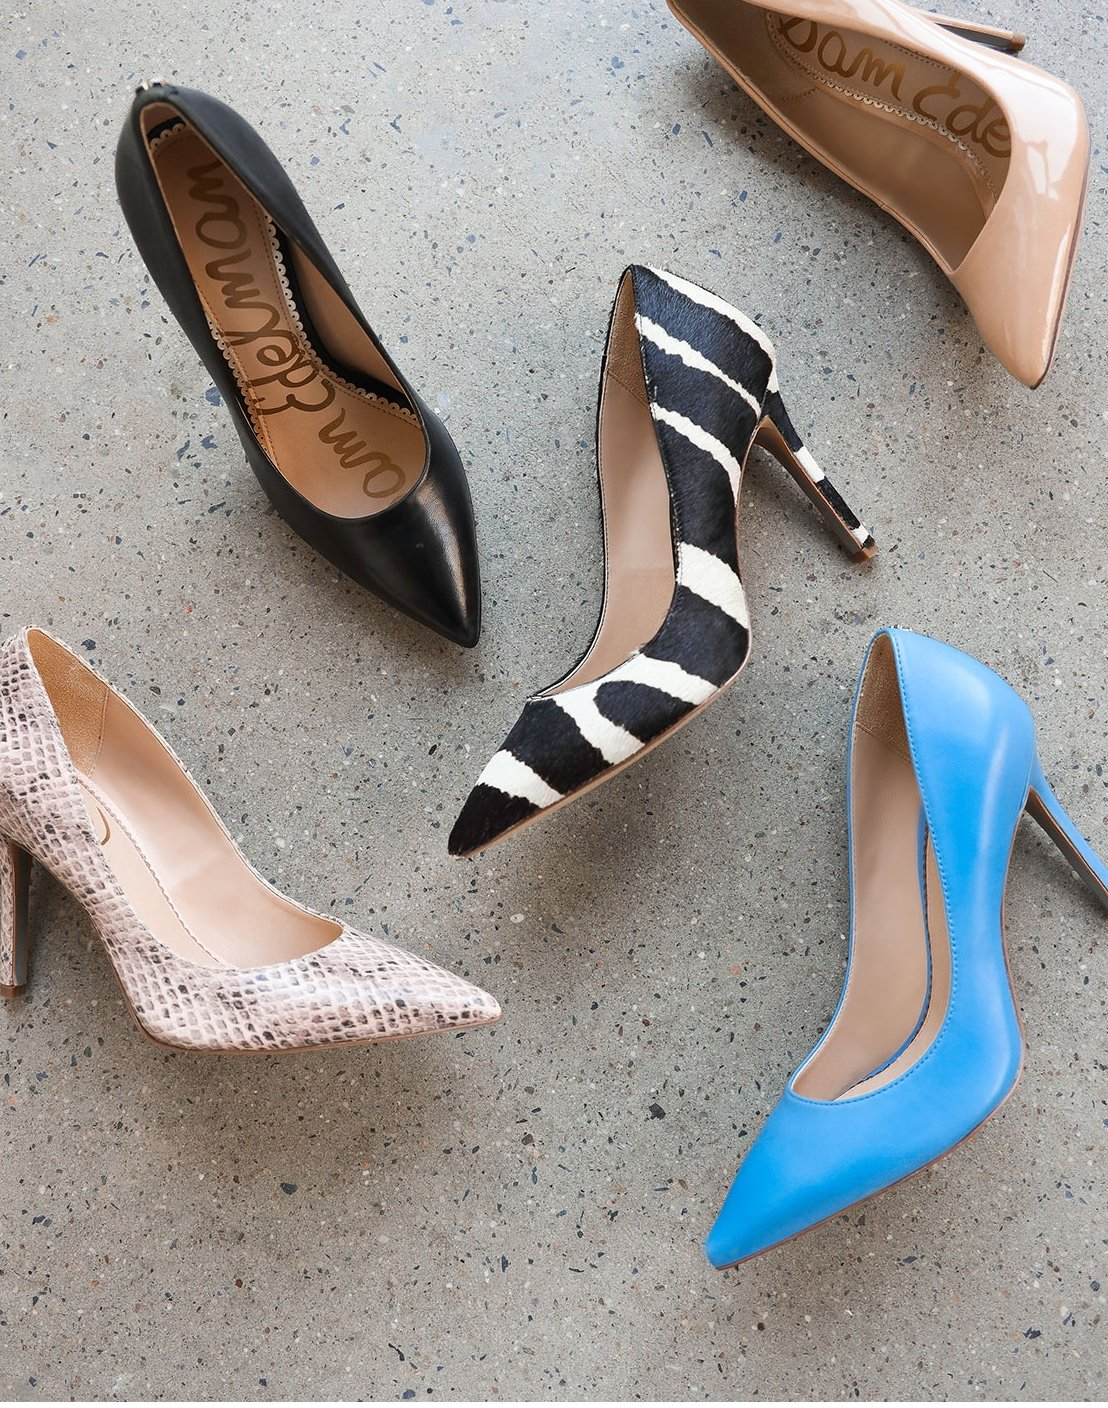 Sam Edelman's popular Hazel pumps have the comfort and fit technology that can take you from all day to all night